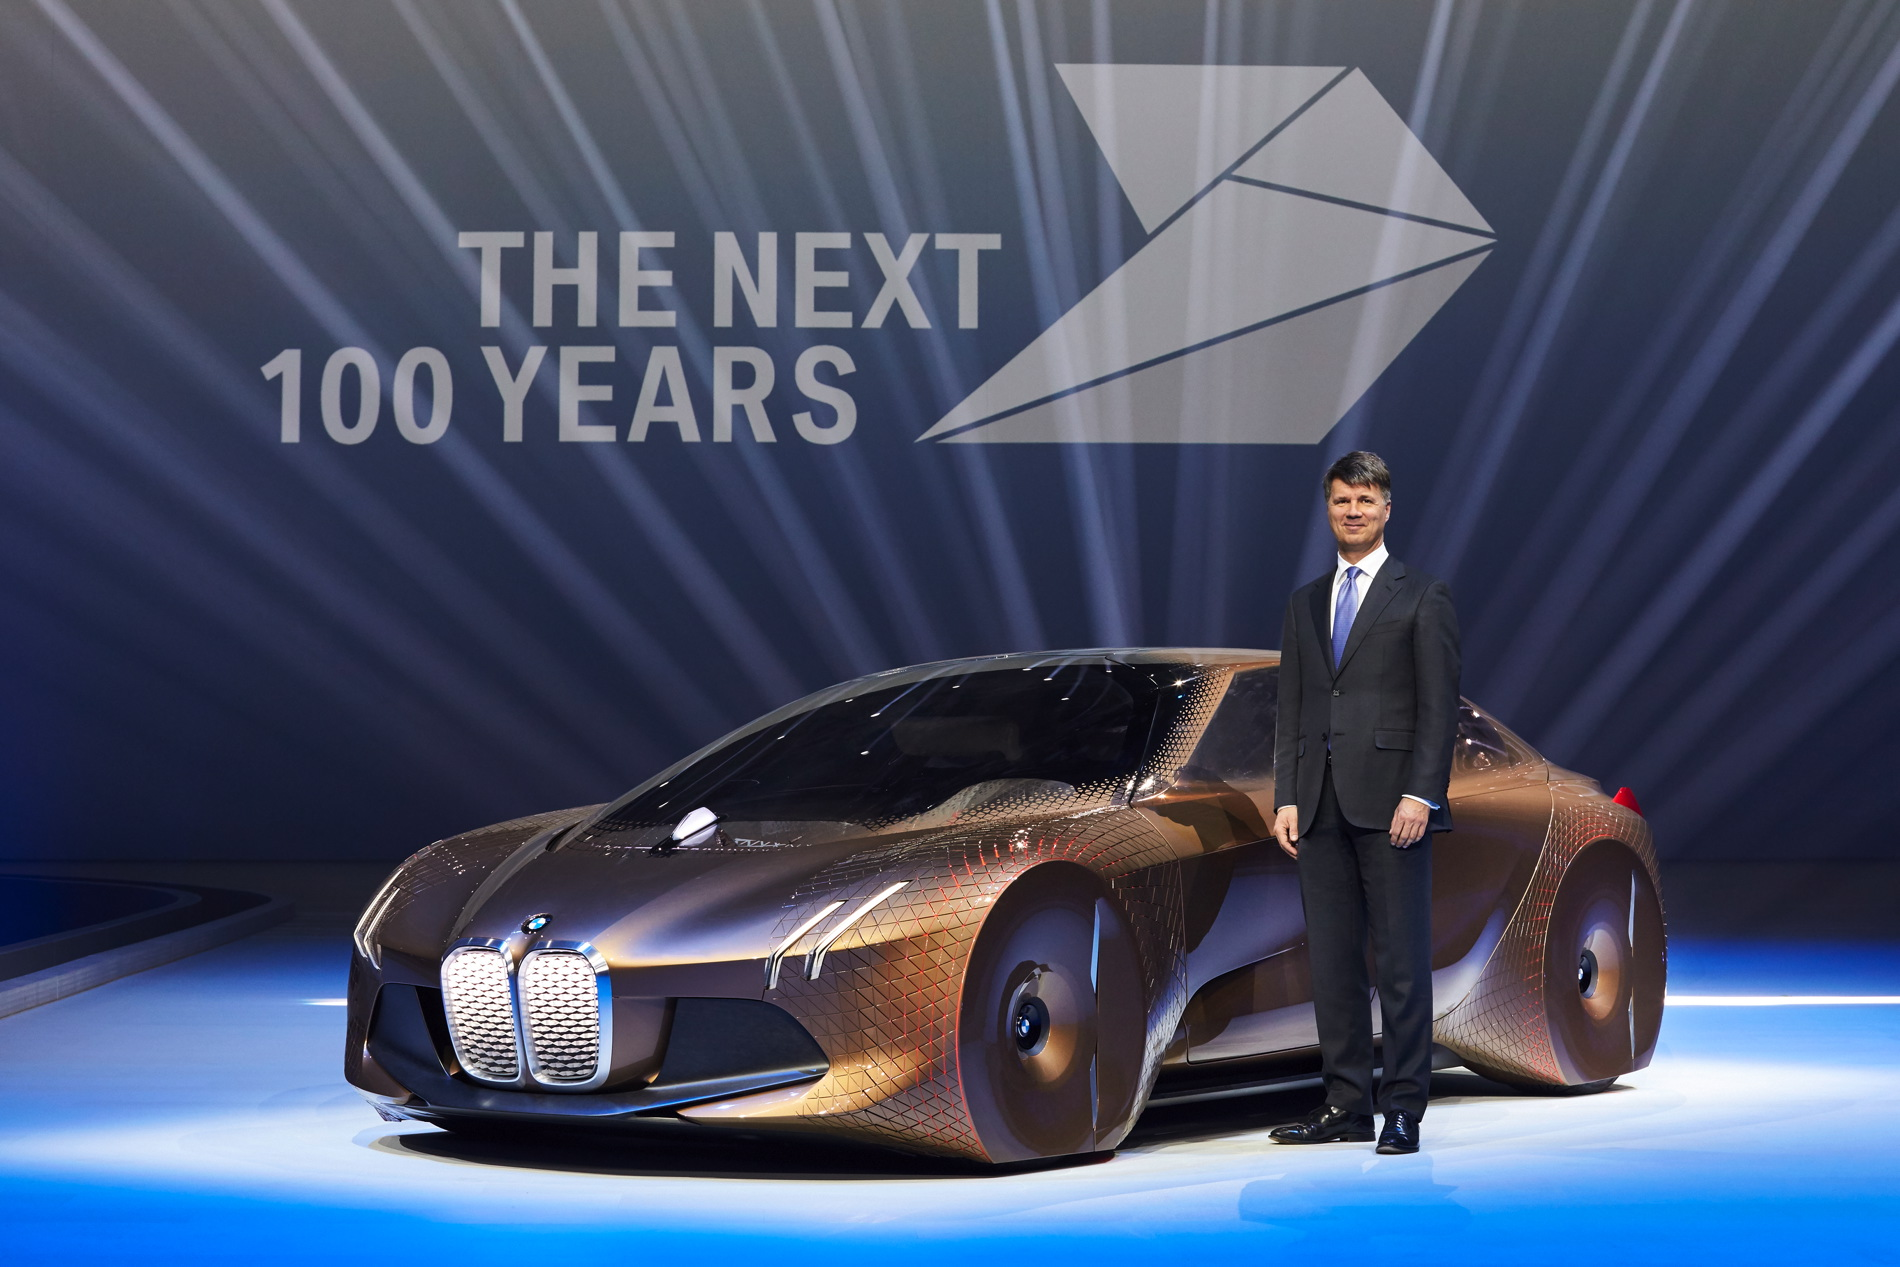 BMW VISION NEXT 100 images 34